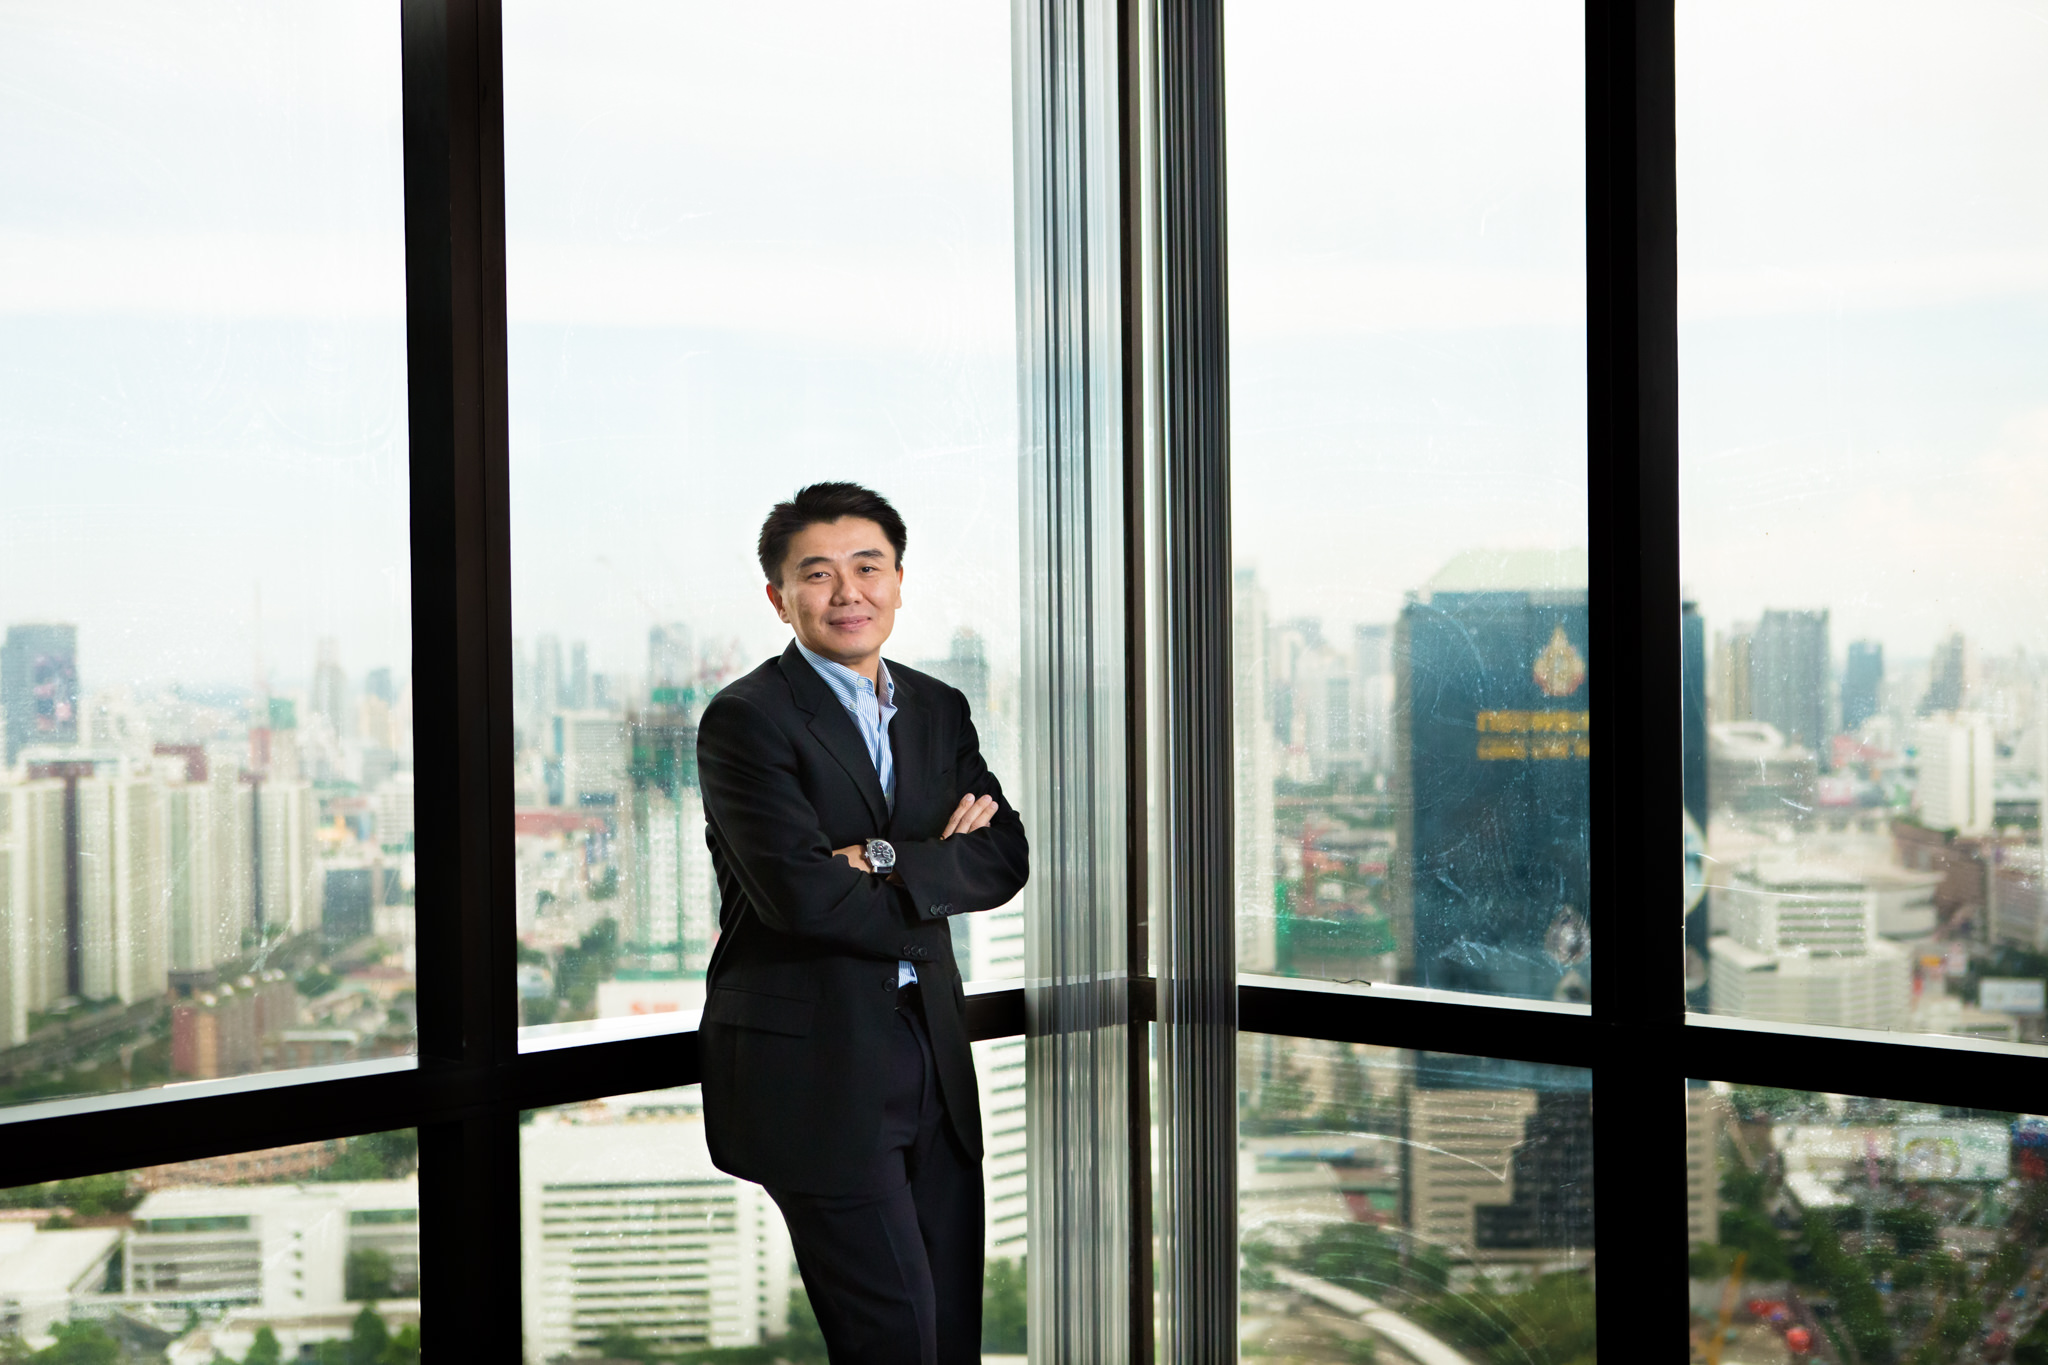 Hong Kong Corporate Photographer